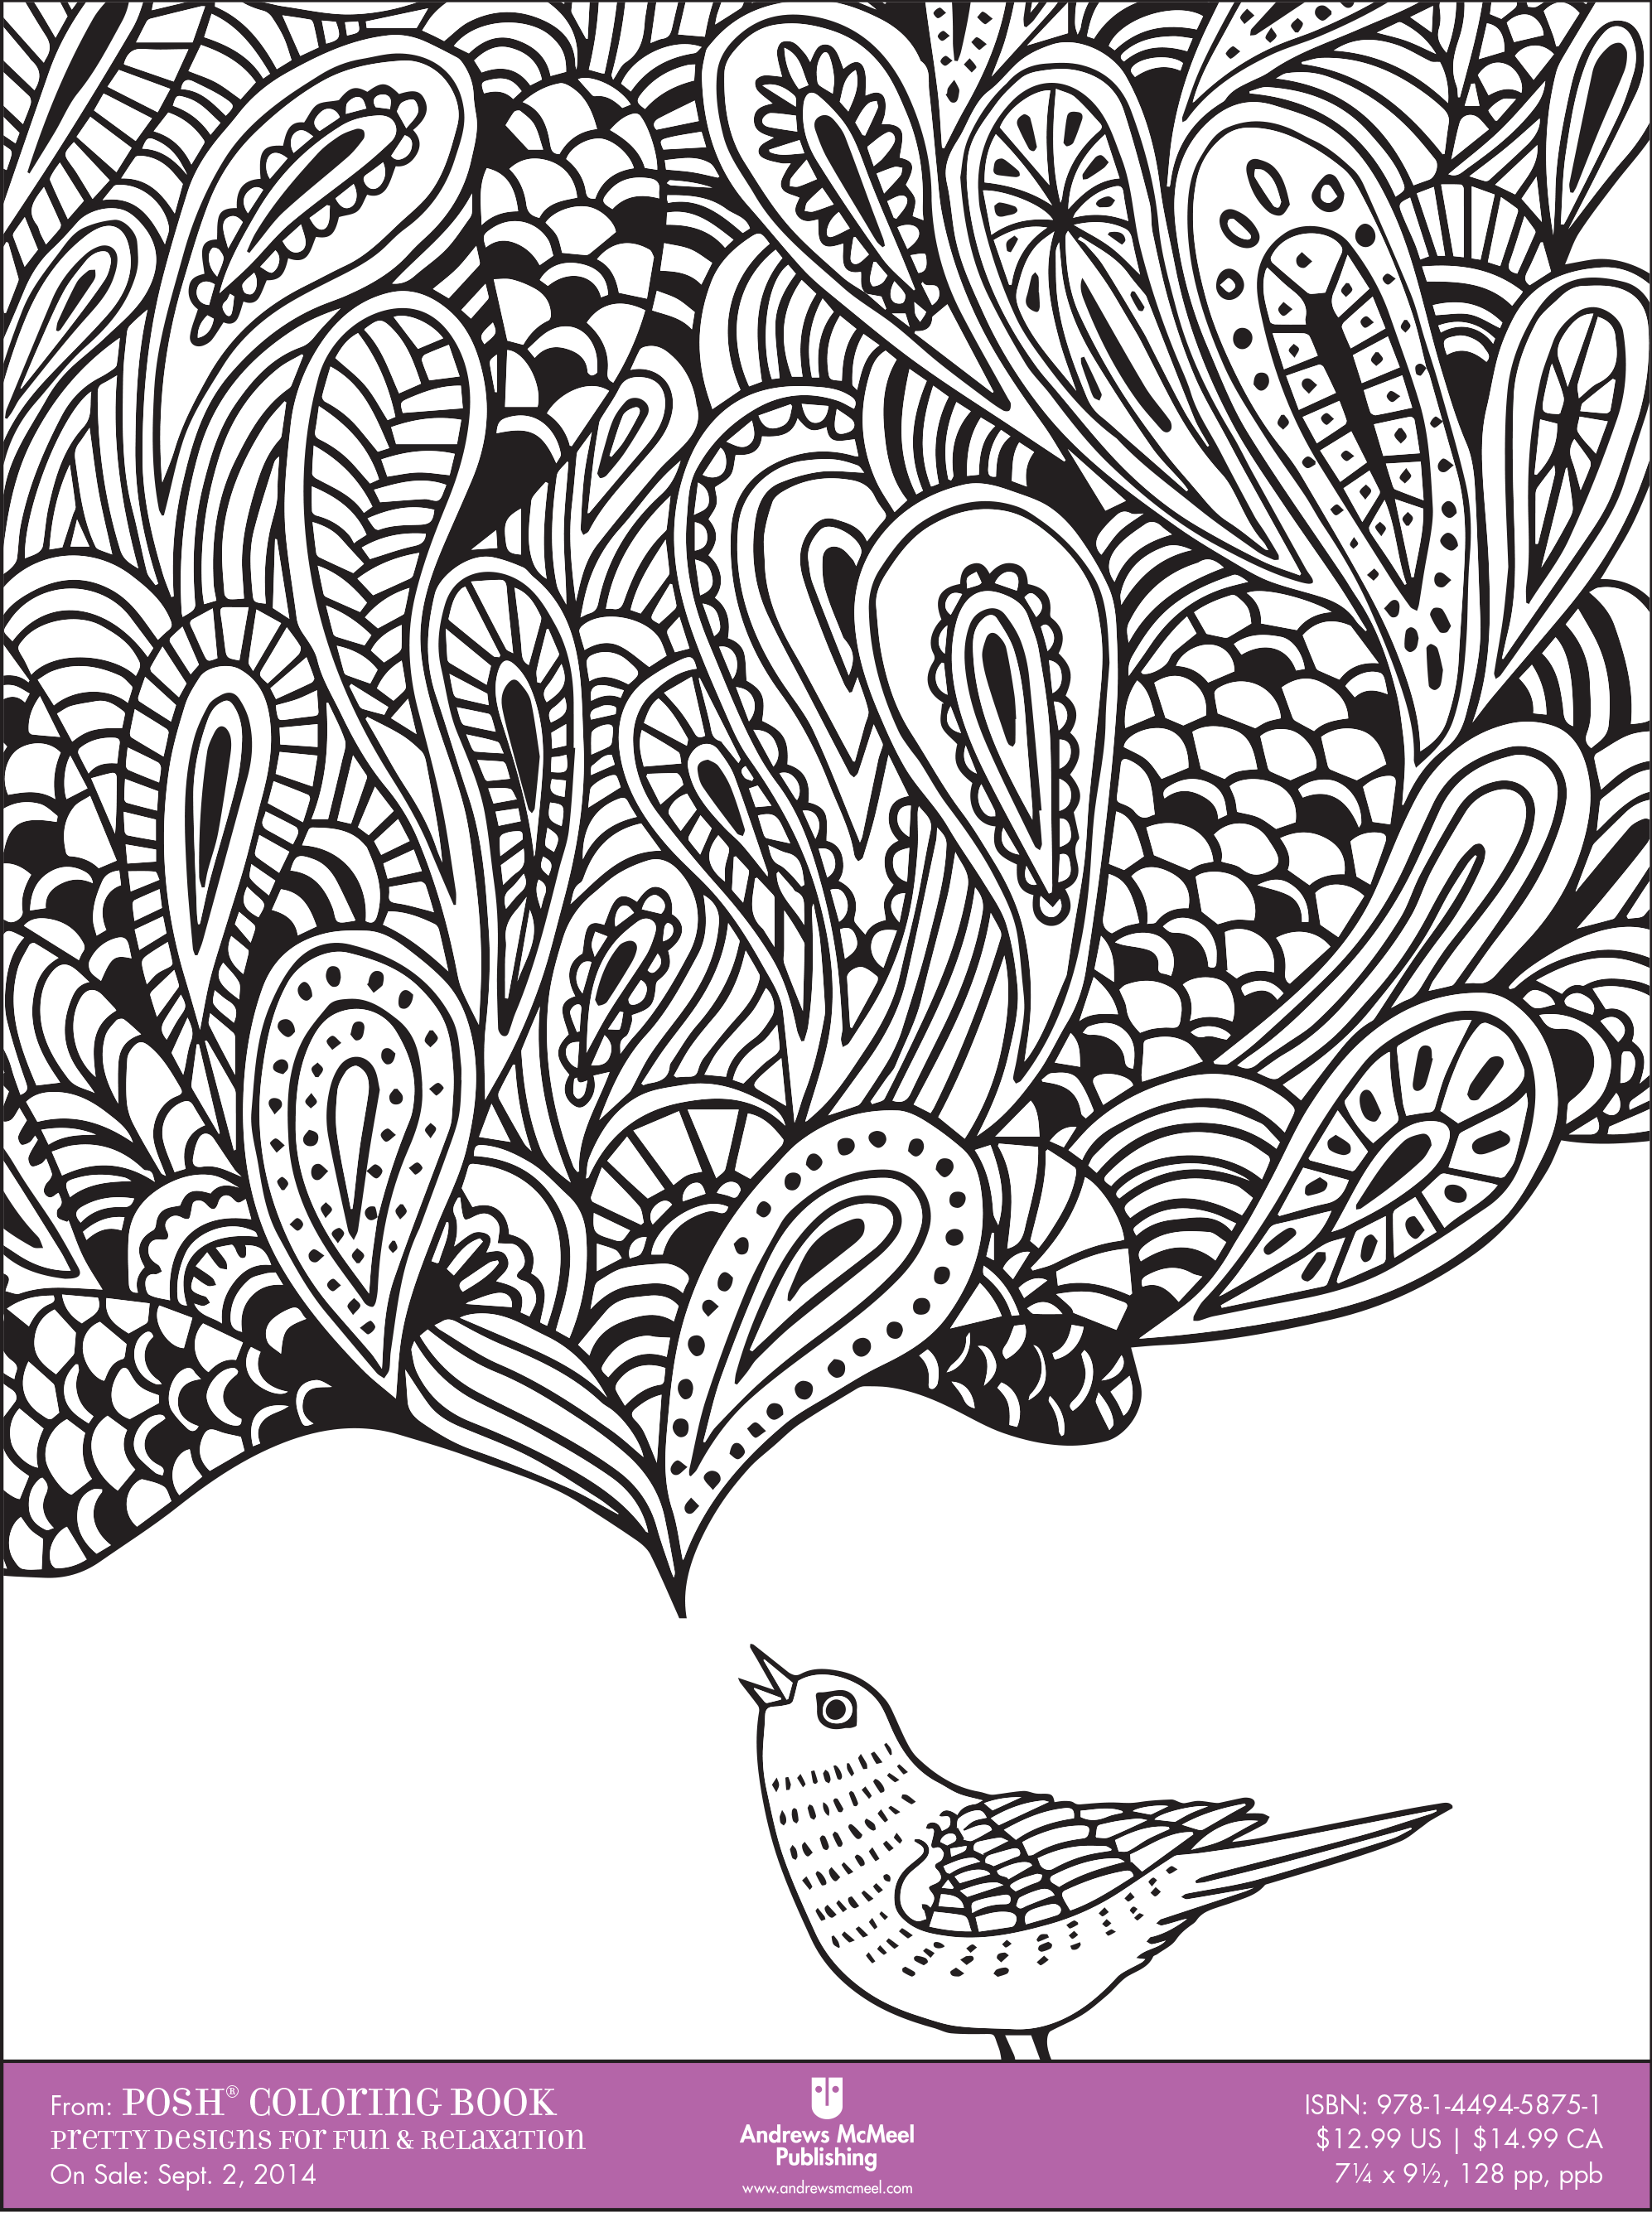 Lotus designs coloring book - Coloring Books For Adults Downloadable Sample Pages Are Available Here